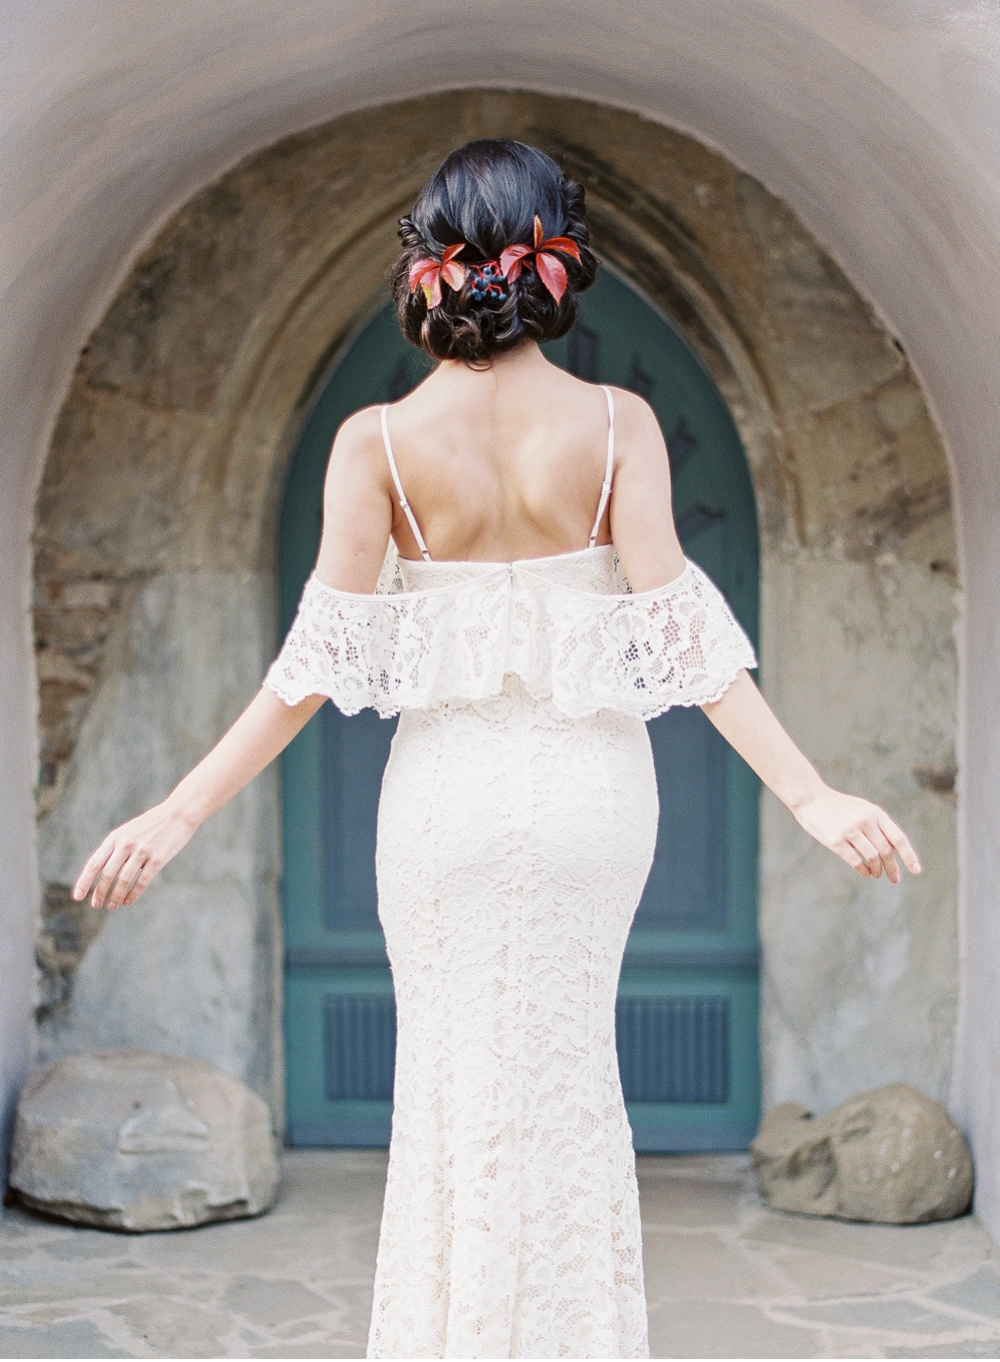 Europe_FineArtWedding_Photographer©MadalinaSheldon_0073.jpg